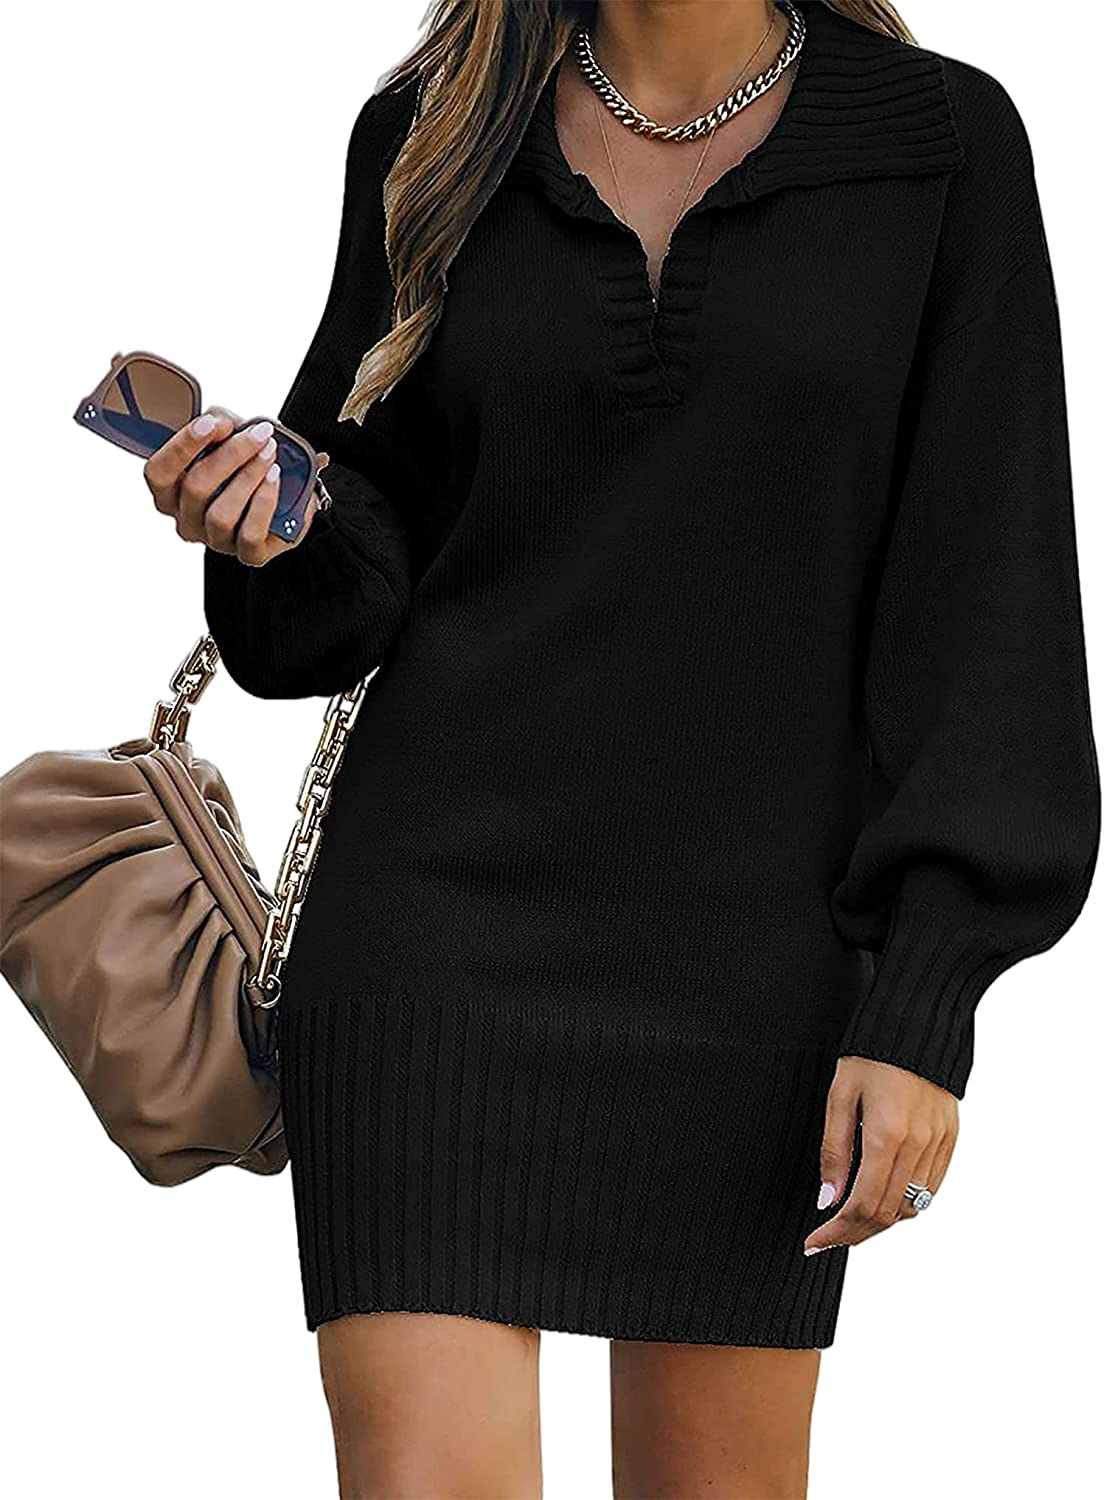 BerryGo Women Half Zip Foldover Collar Long Sleeve Sweater Dresses V Neck Solid Soft Knit Pullover Long Sweaters